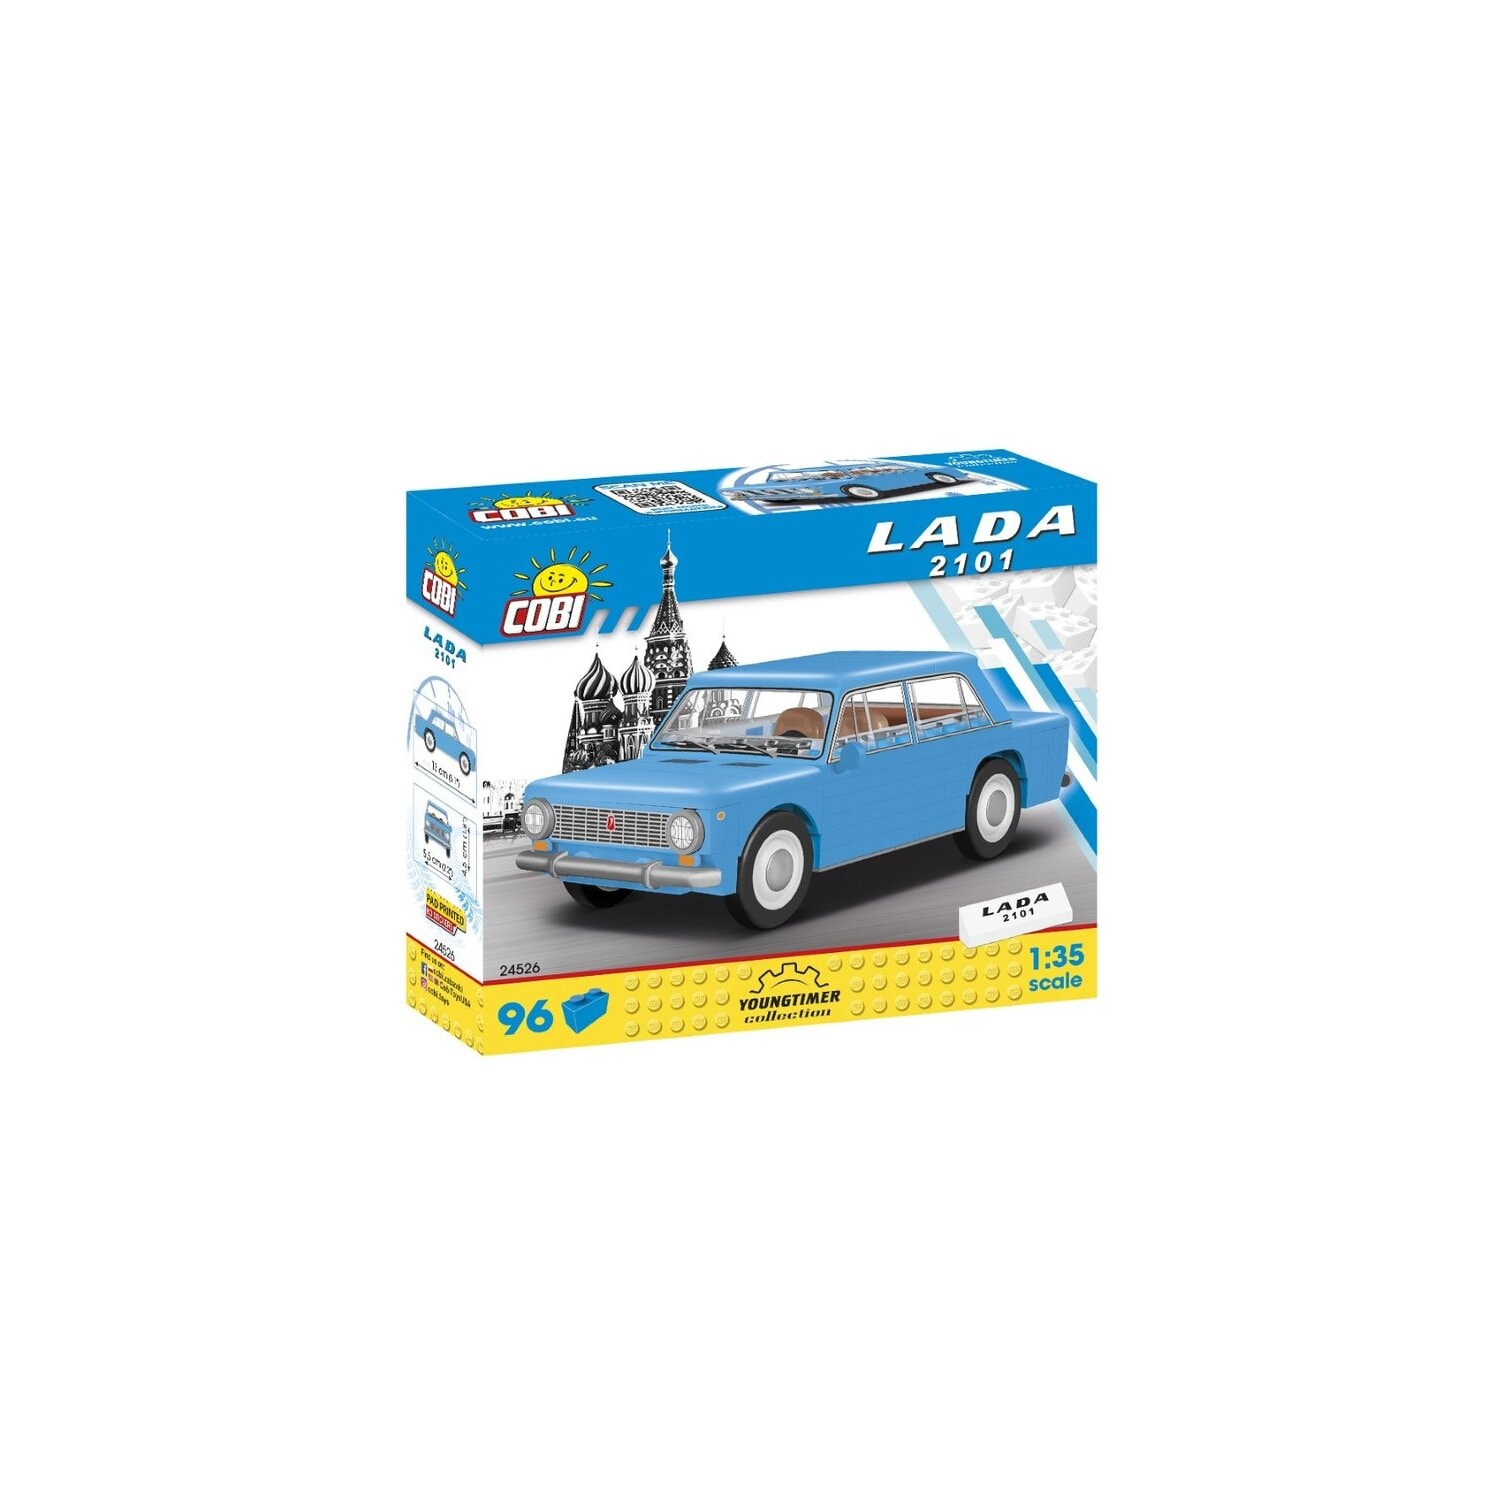 Klocki COBI Youngtimer Collection - Łada 2101 24526